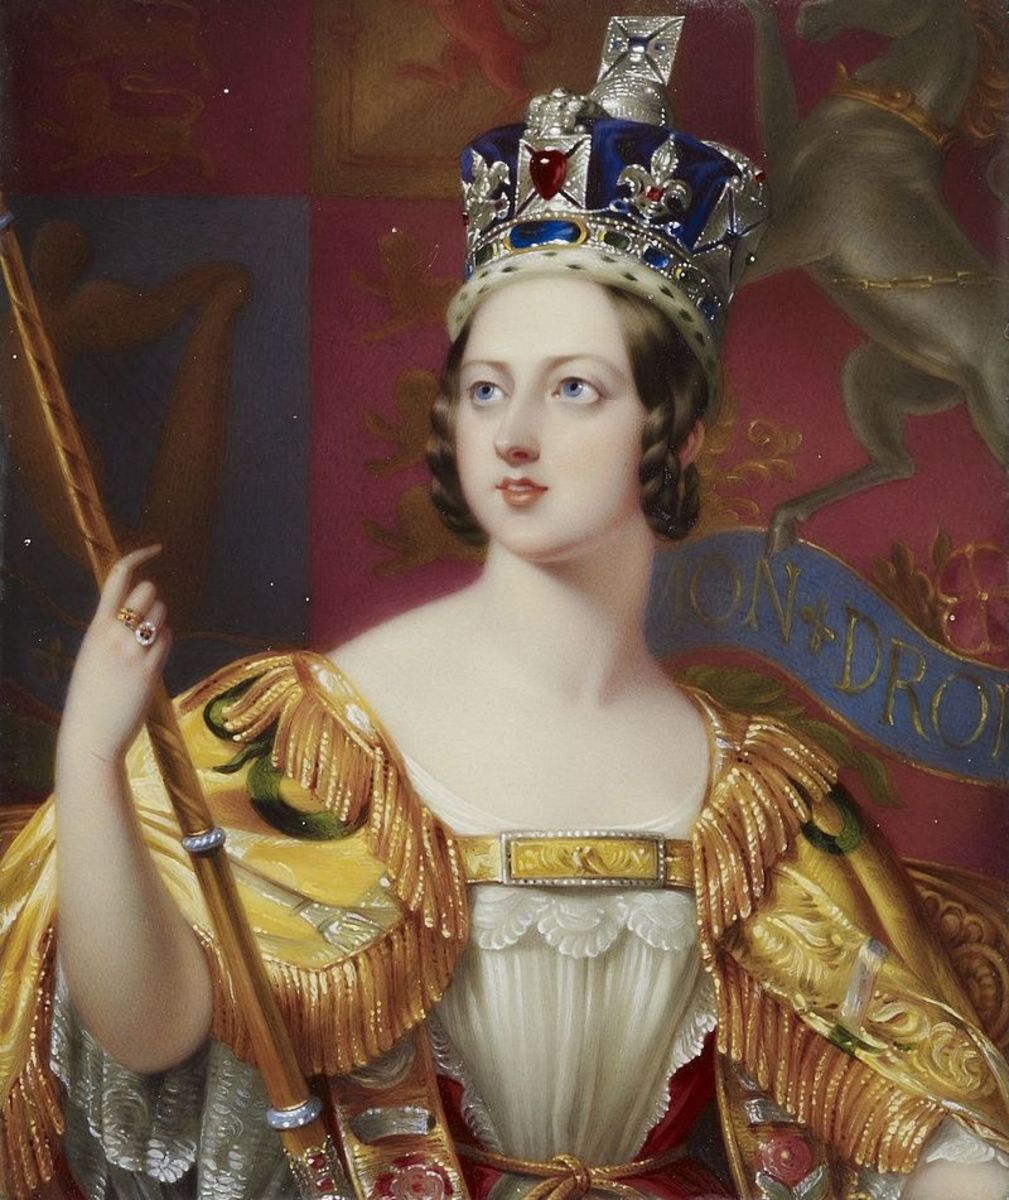 Queen Victoria Targeted by Assassins